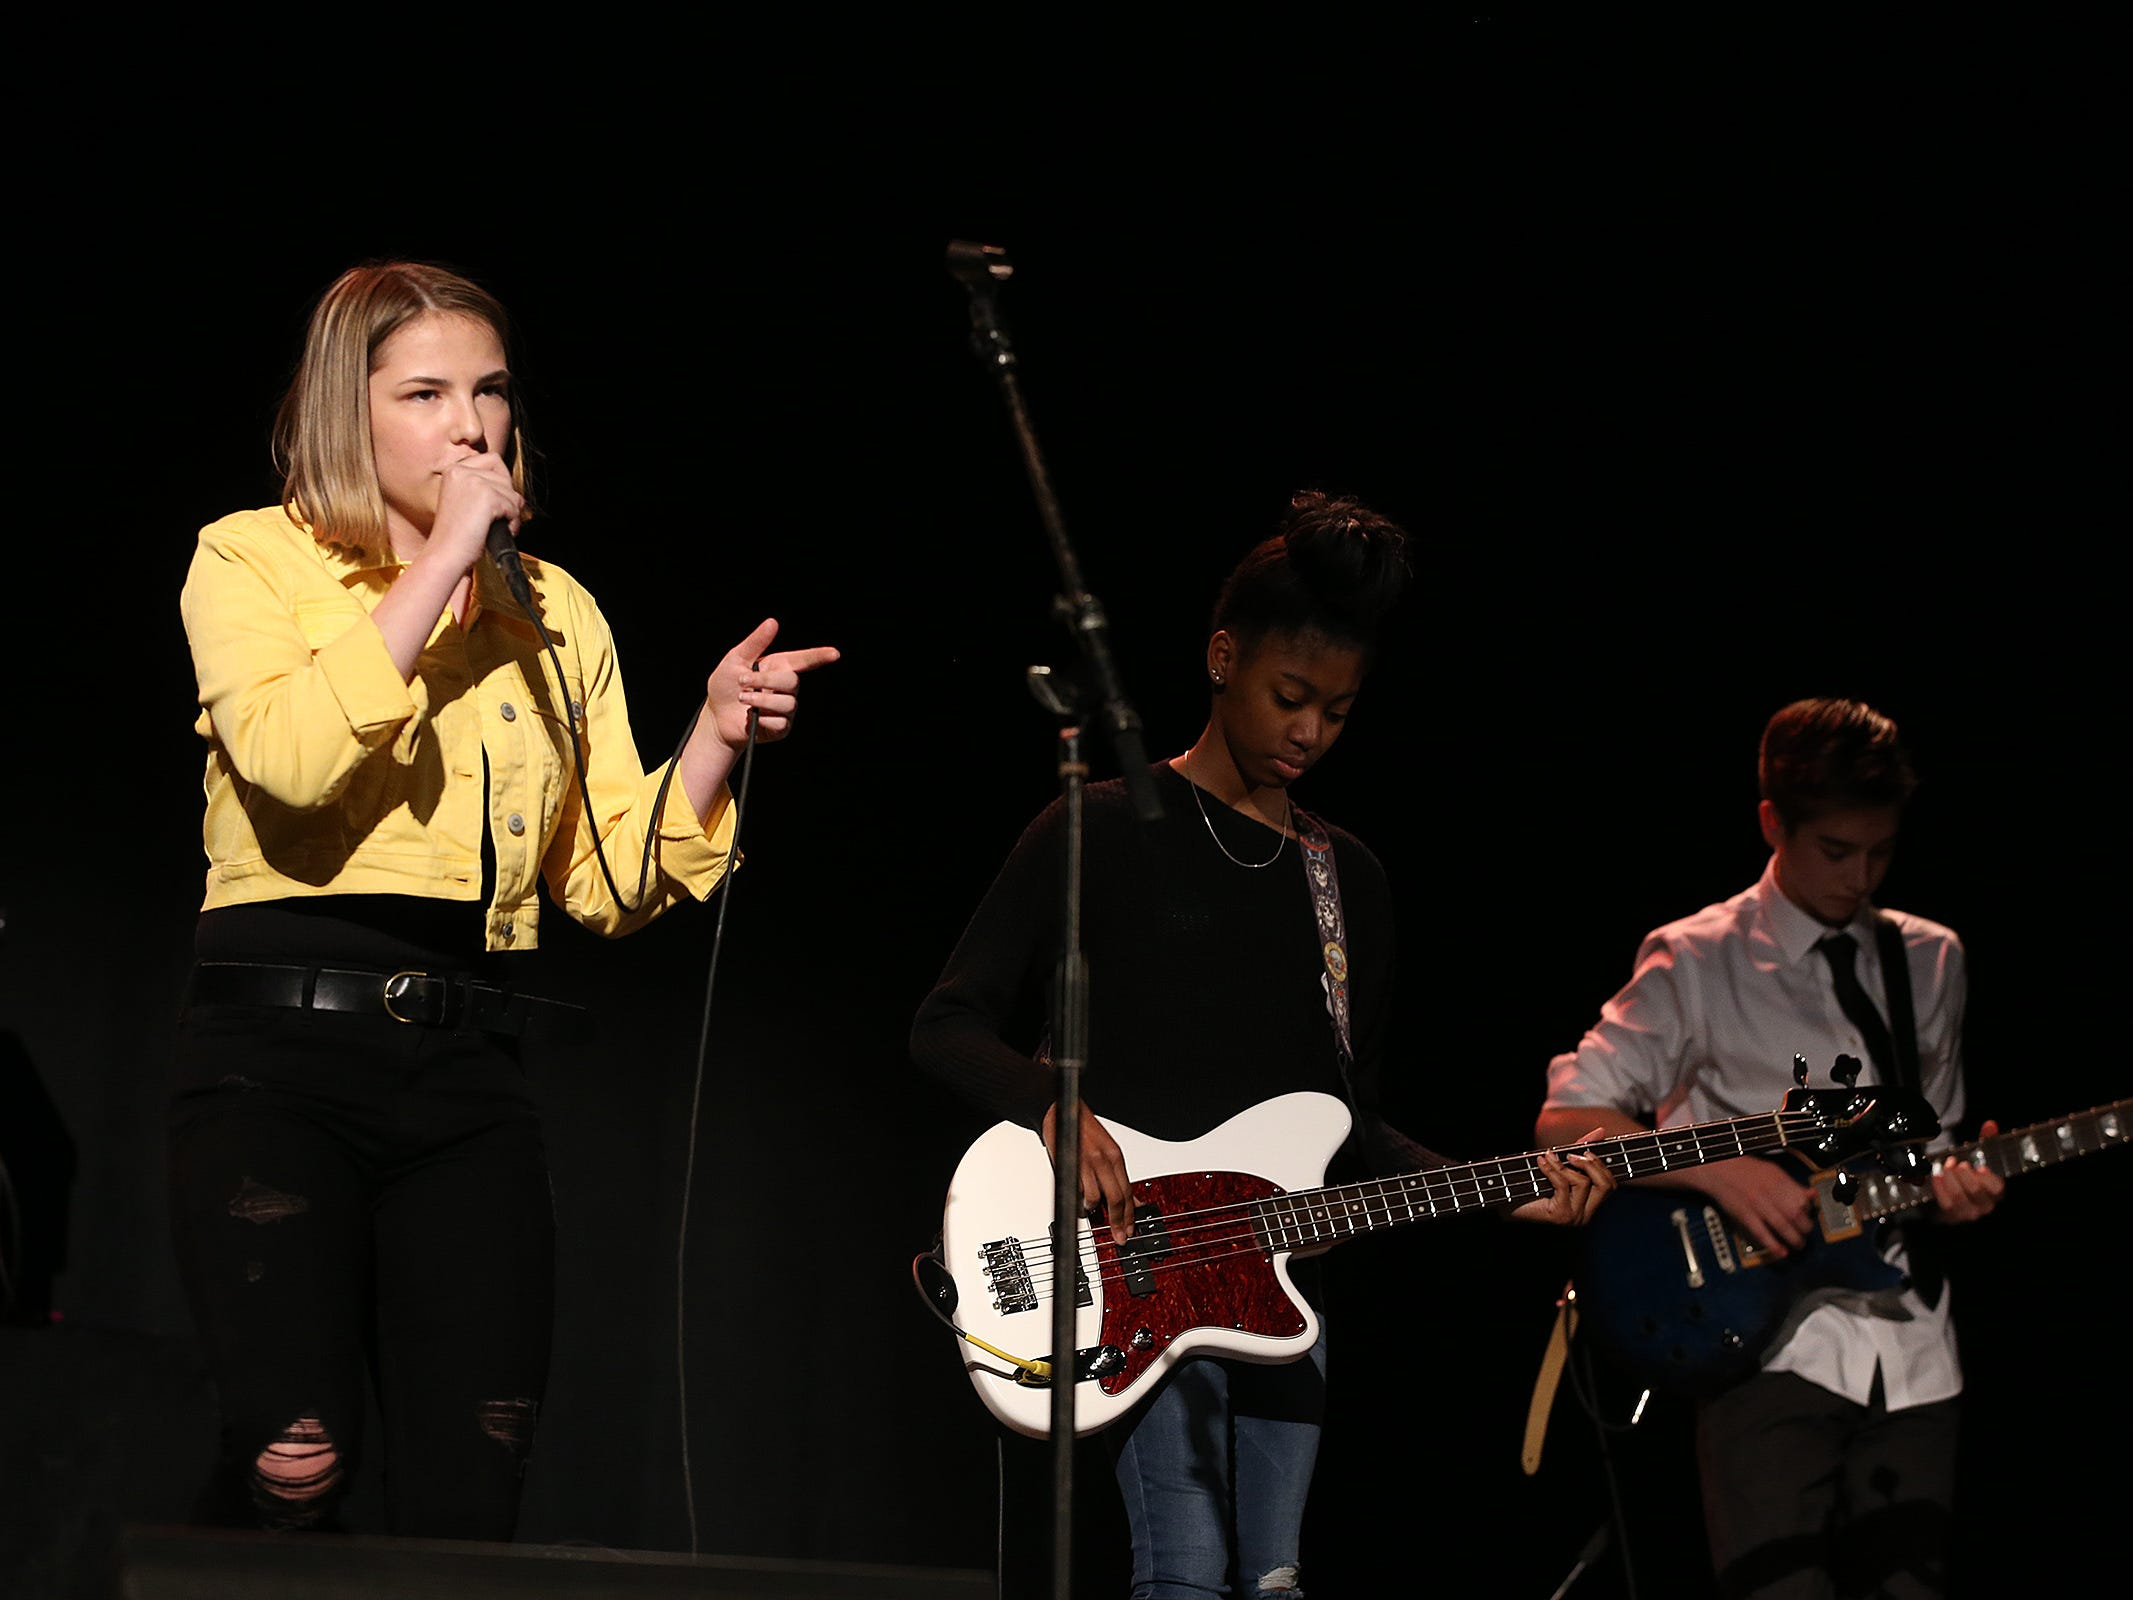 """Lakehouse Junior Pros perform after """"Asbury Park: Riot, Redemption and Rock 'N' Roll"""" documentary screening at the Paramount Theatre during the Asbury Park Music and Film Festival in Asbury Park, NJ Sunday, April 28, 2019.  #APMFF"""